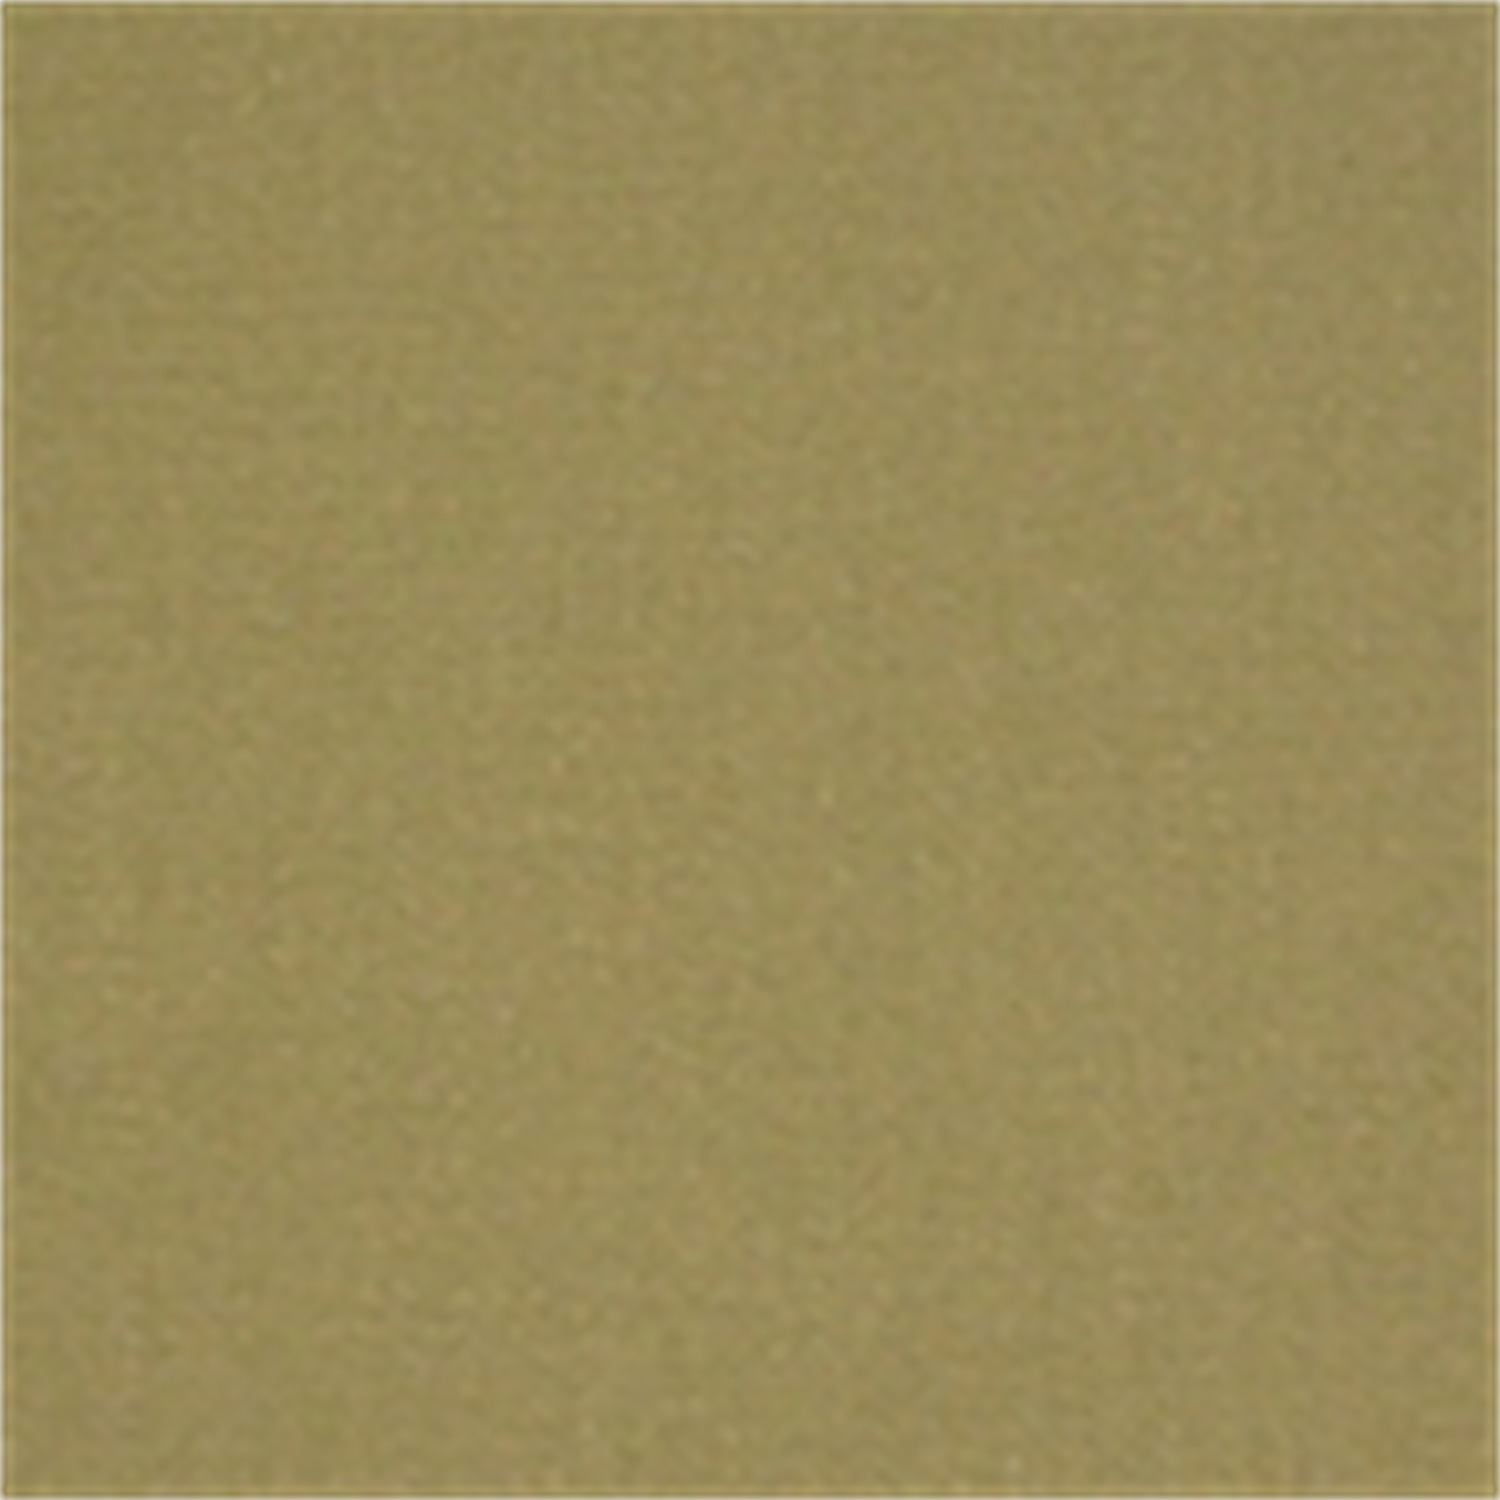 Fia SP88-23TAUPE Seat Protector Custom Seat Cover - image 2 of 2